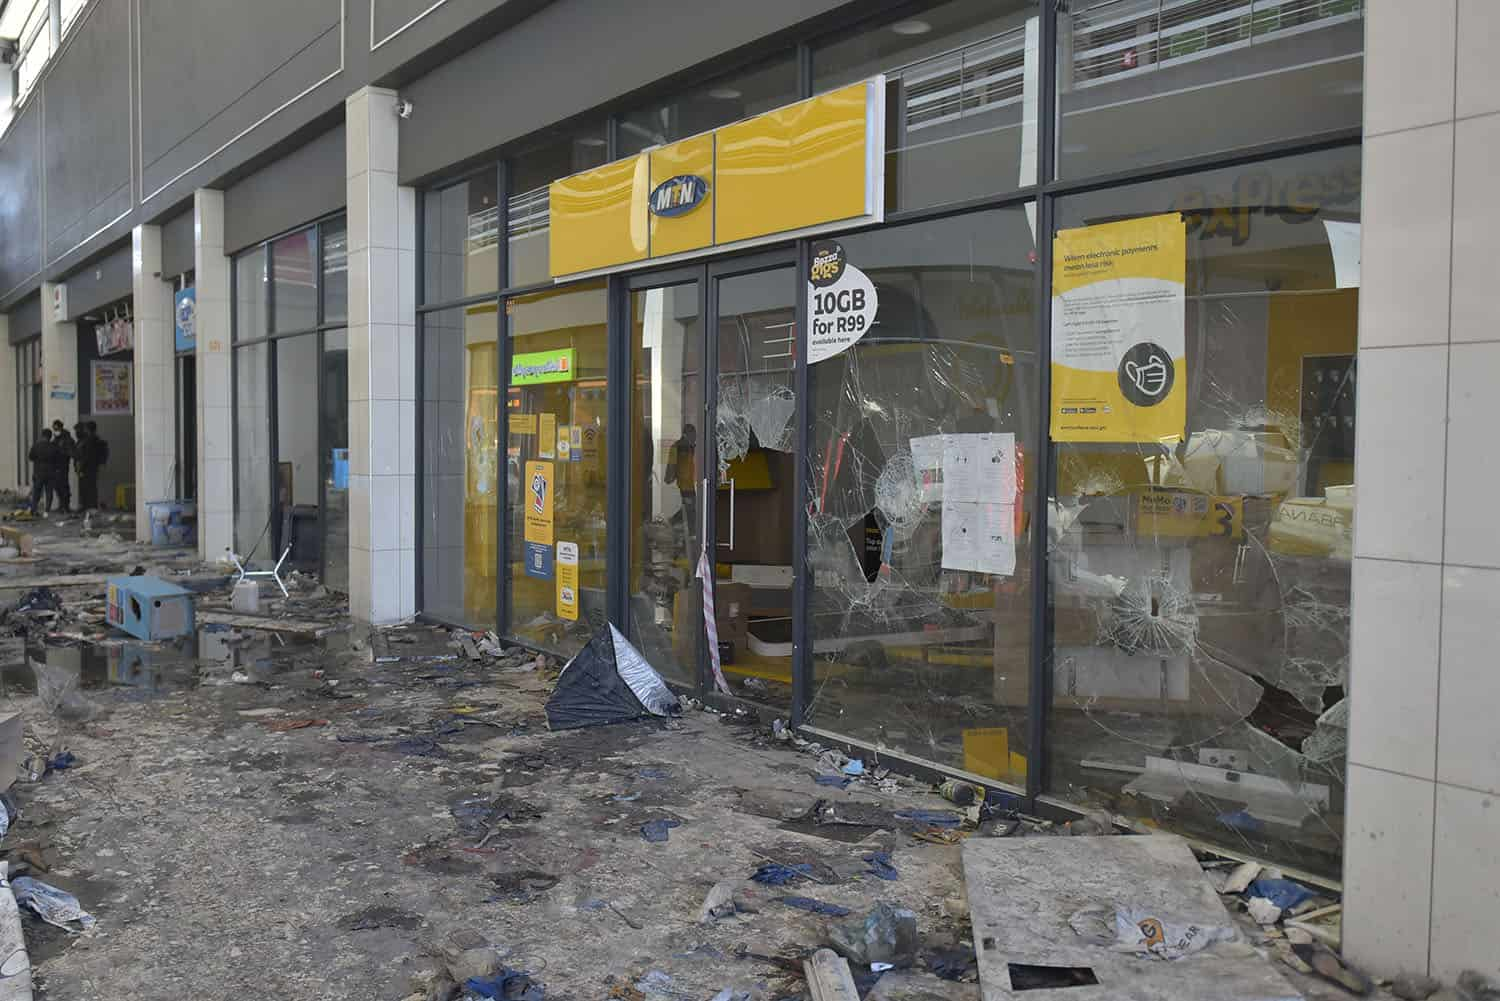 The Pan Africa Mall in Alexandra, 14 July 2021 after mass looting happened in the area. Picture: Neil McCartney